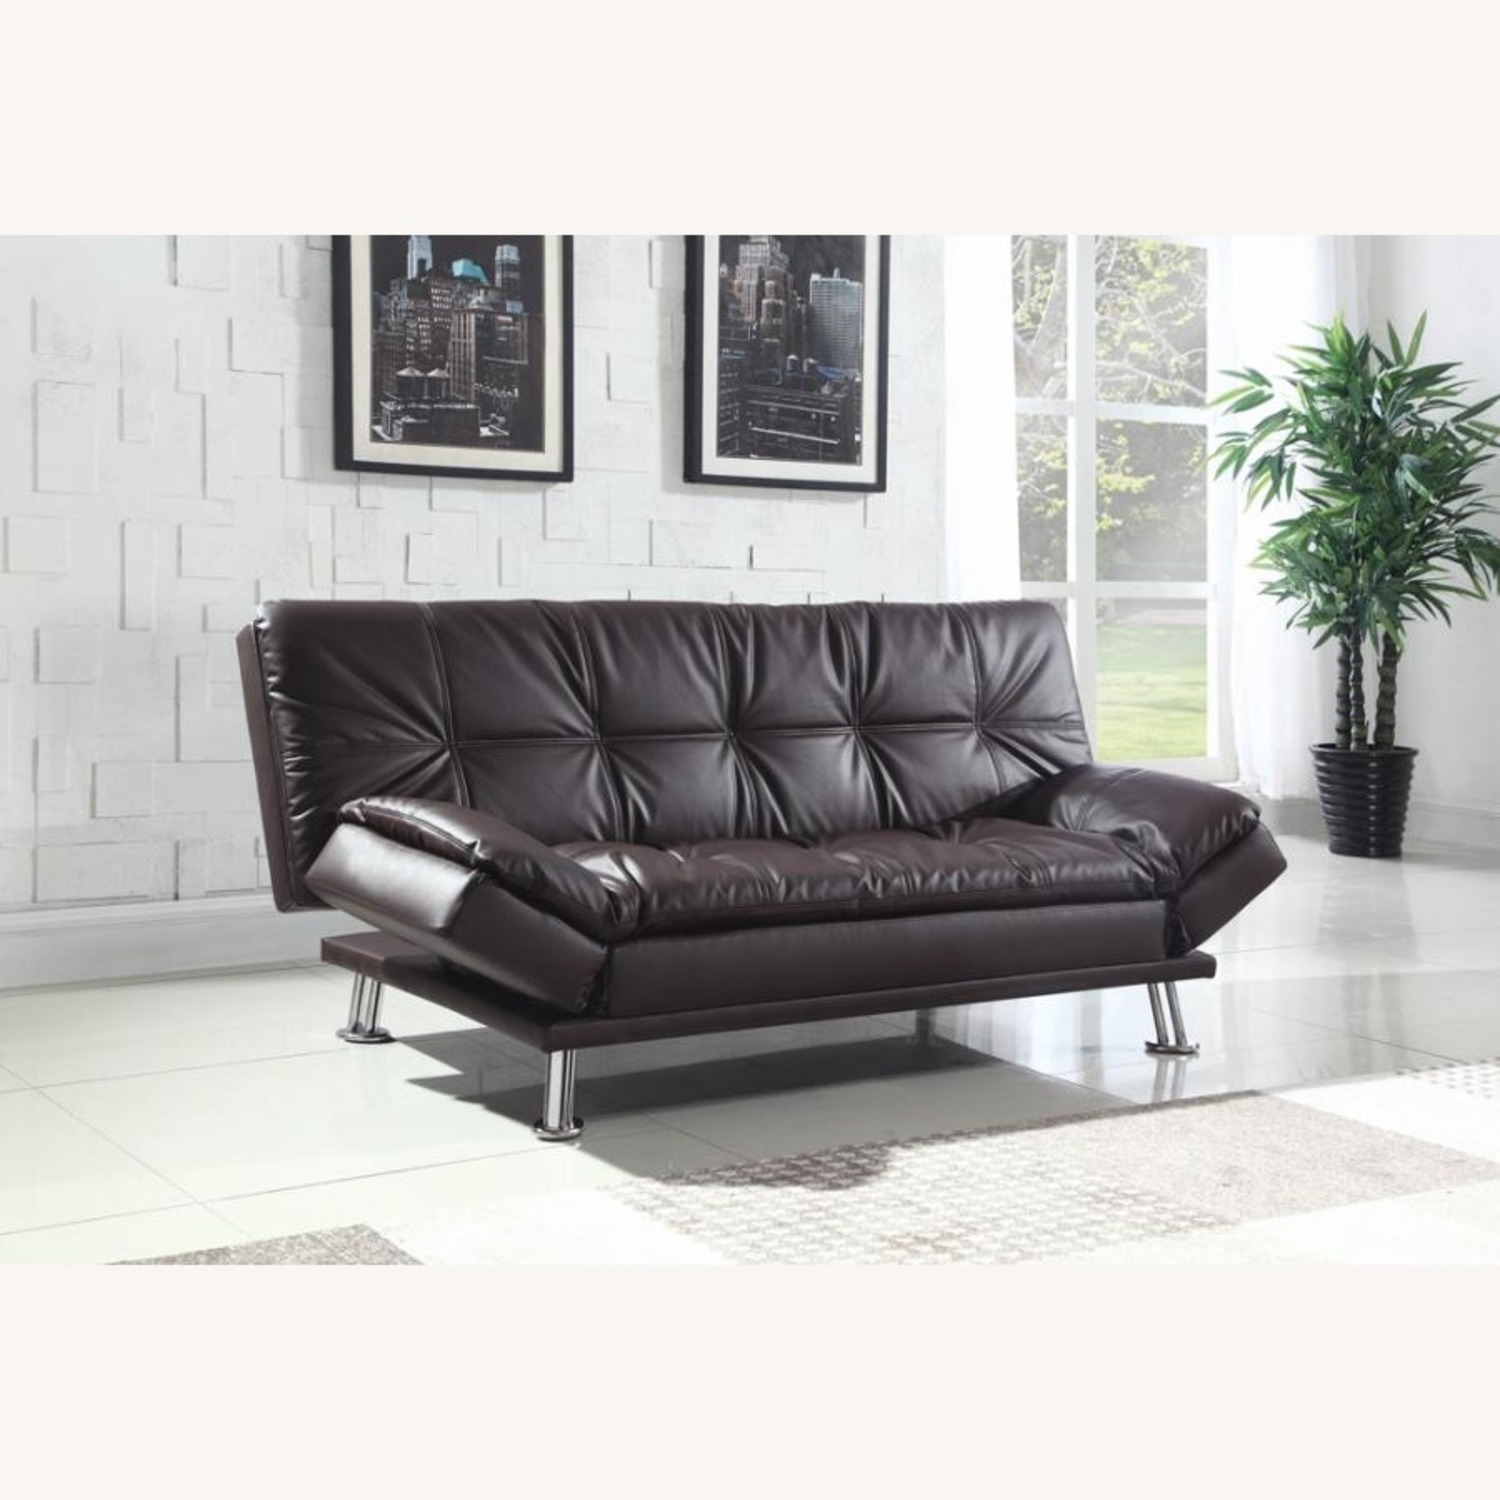 Sofa Bed In Brown Leatherette W/ Chrome Legs - image-1